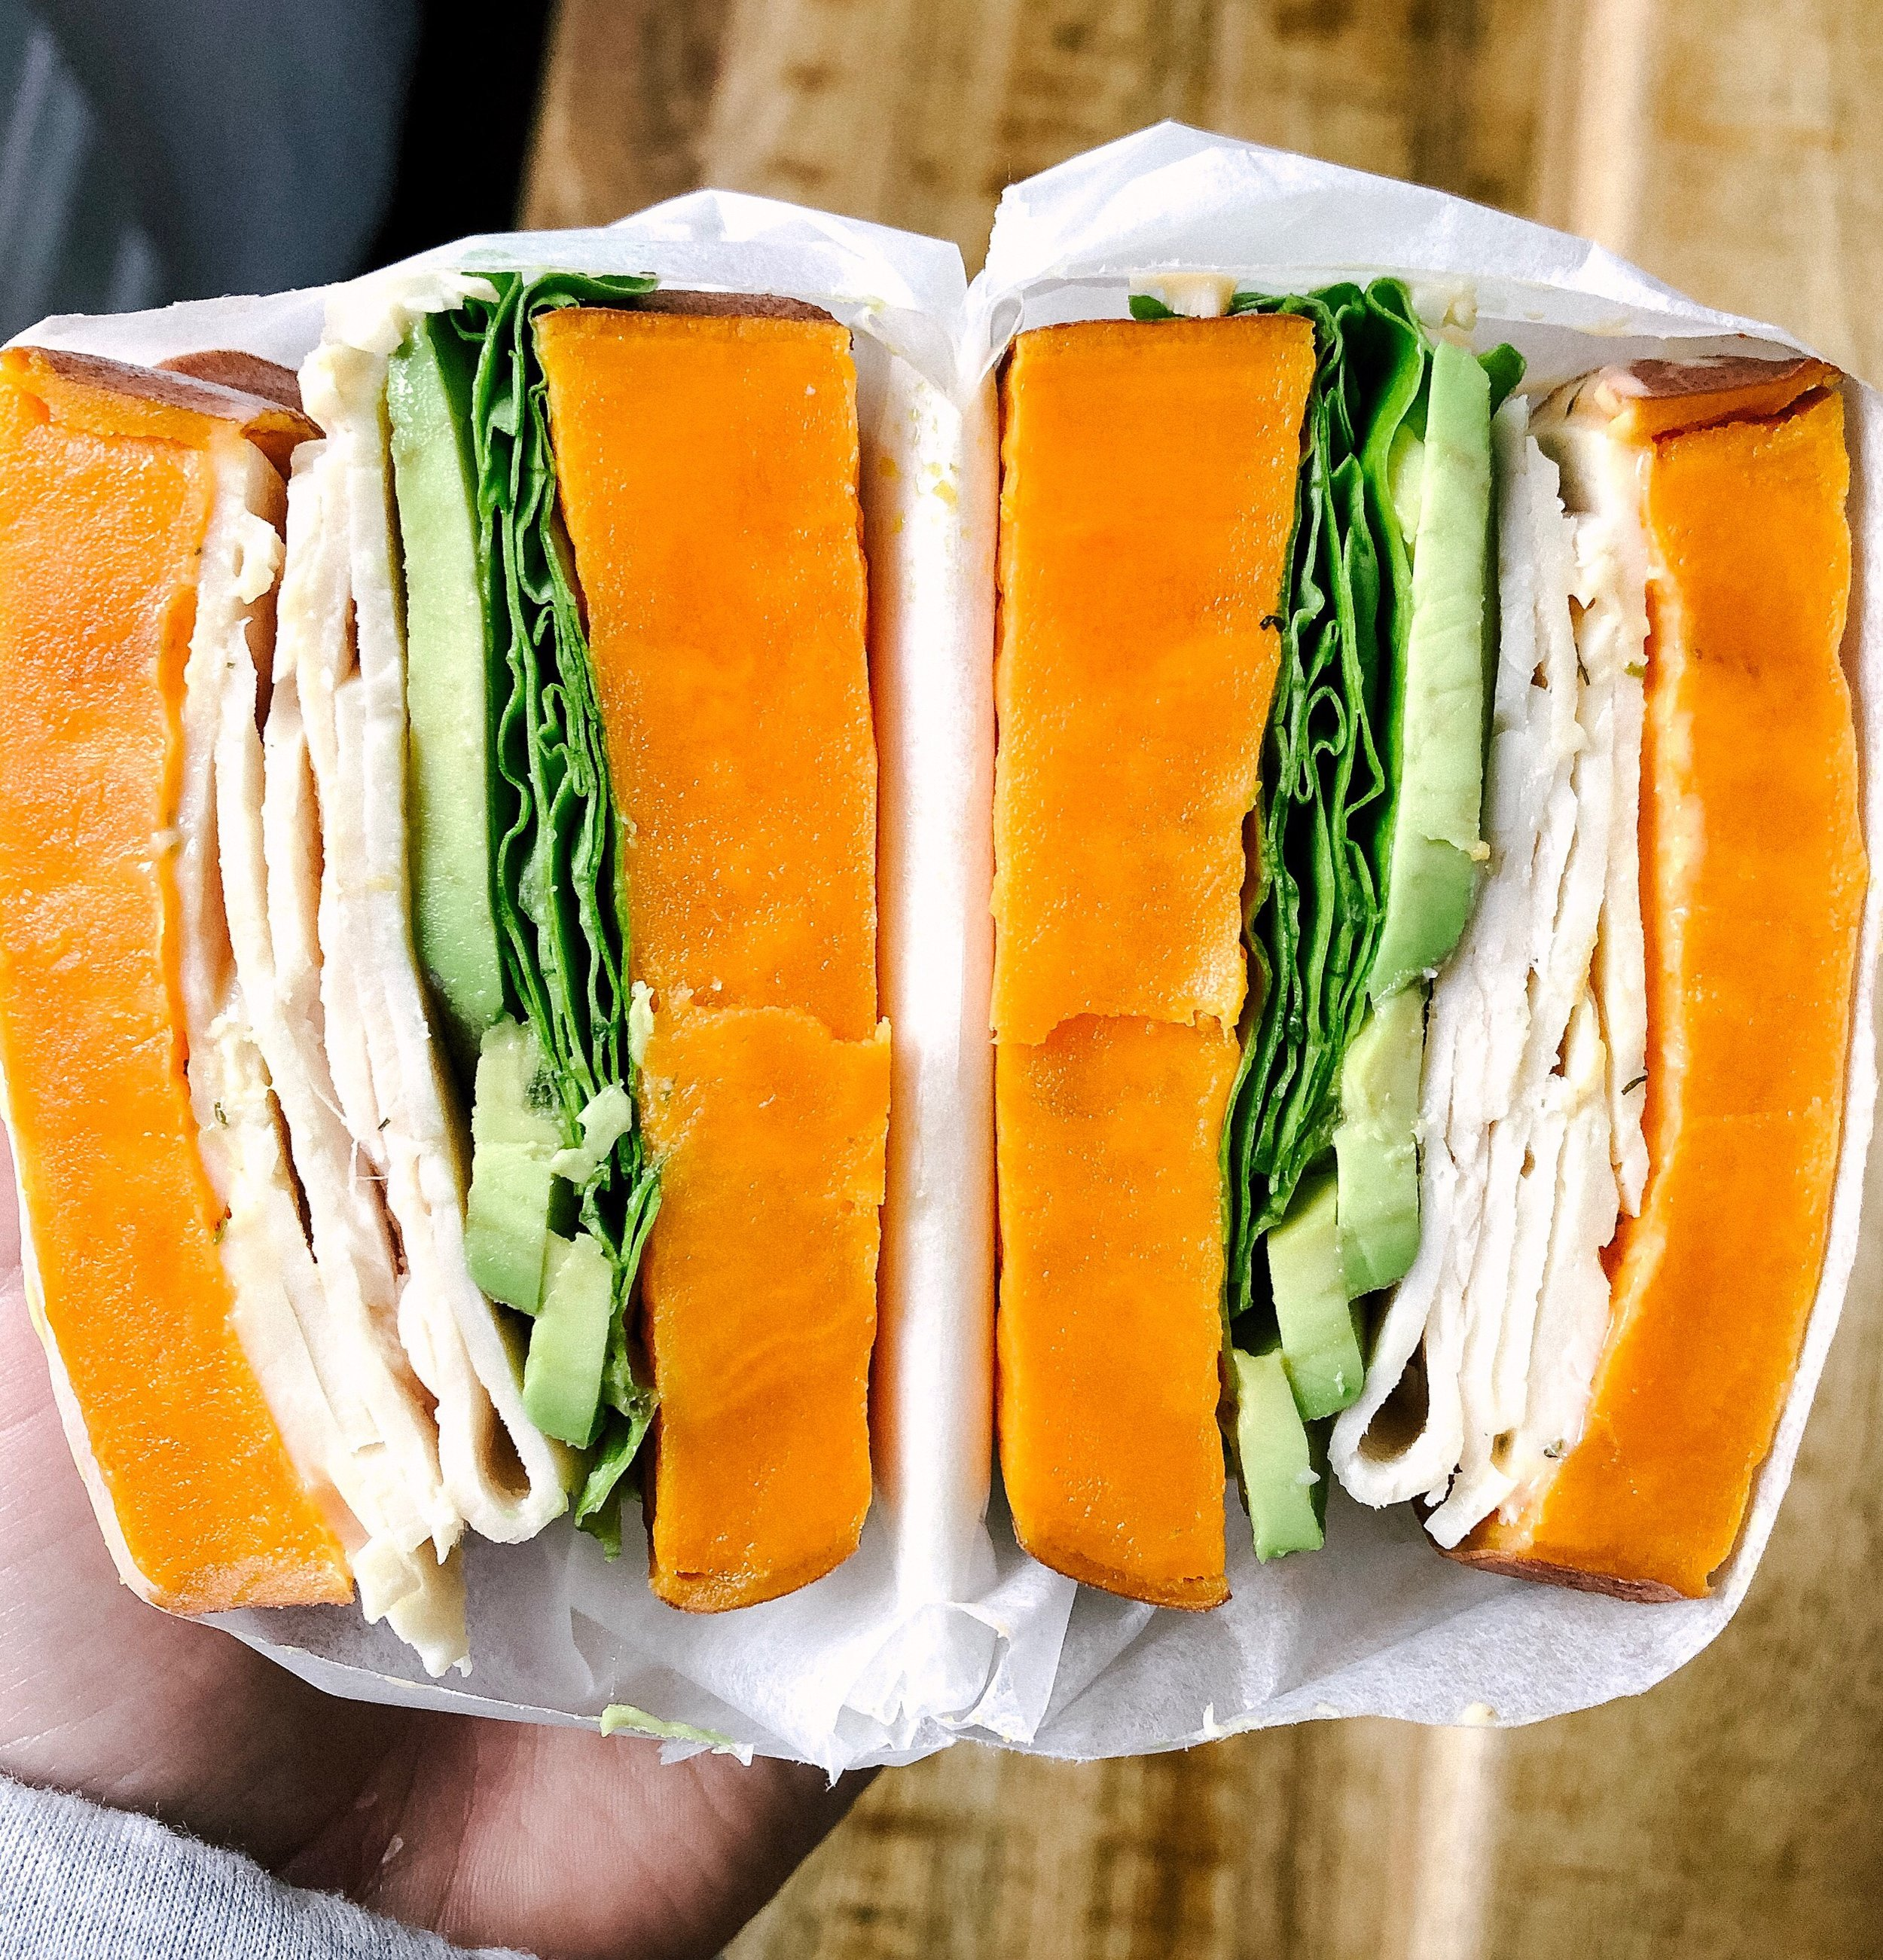 Above view of a turkey sandwich made with sweet potato buns cut in half